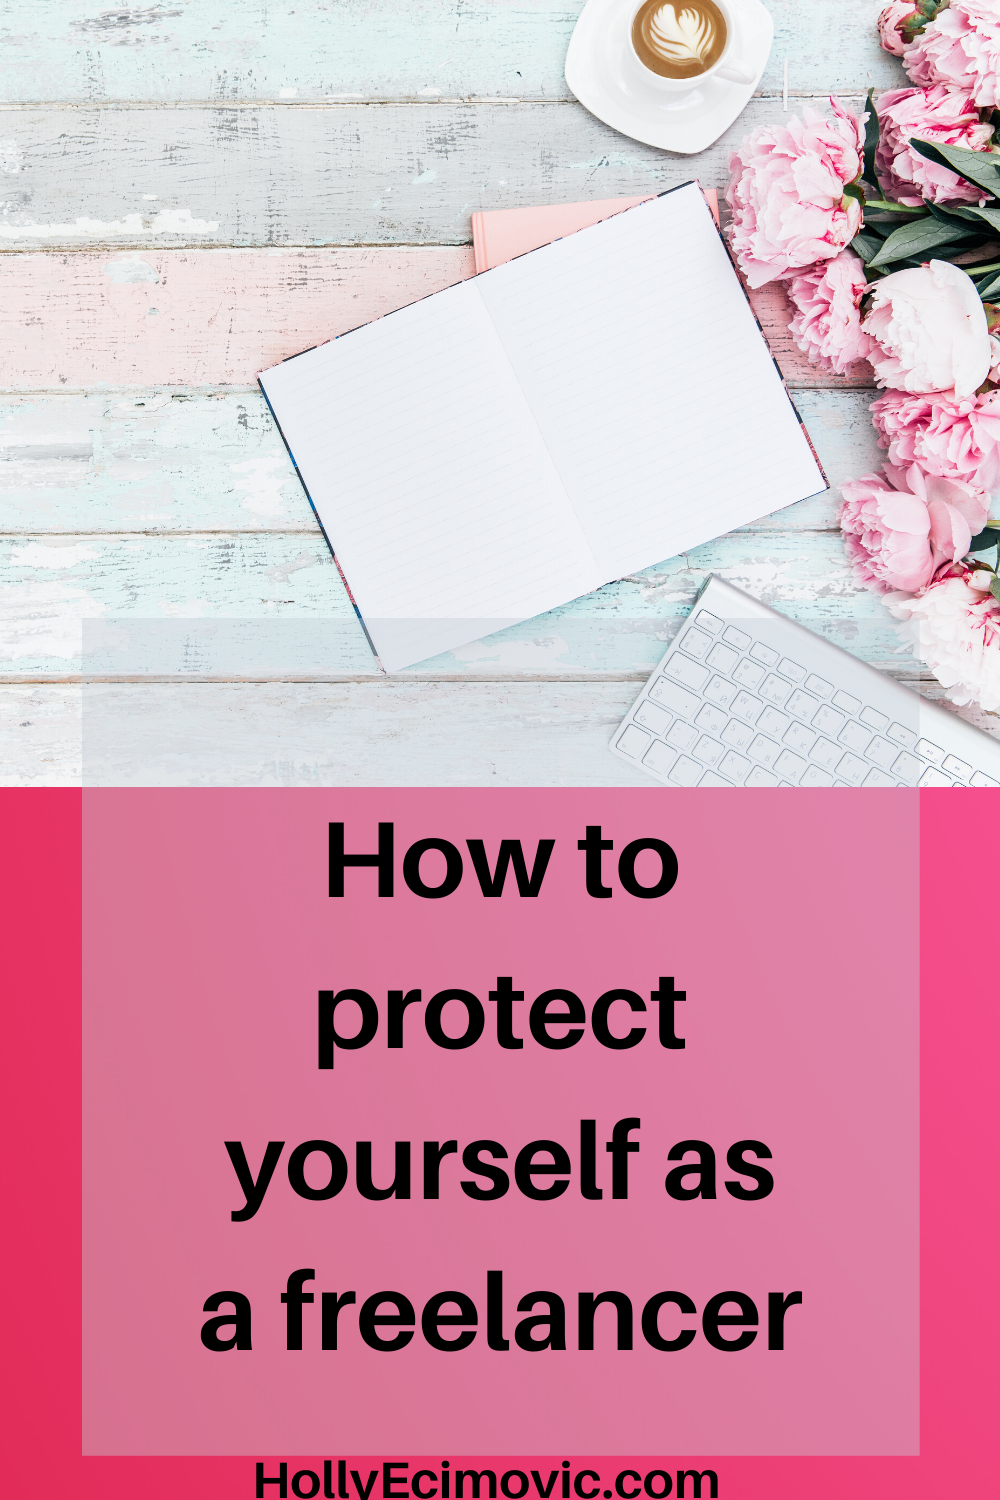 How To Protect Yourself As A Freelancer In 2020 How To Protect Yourself Freelance Legal Contracts